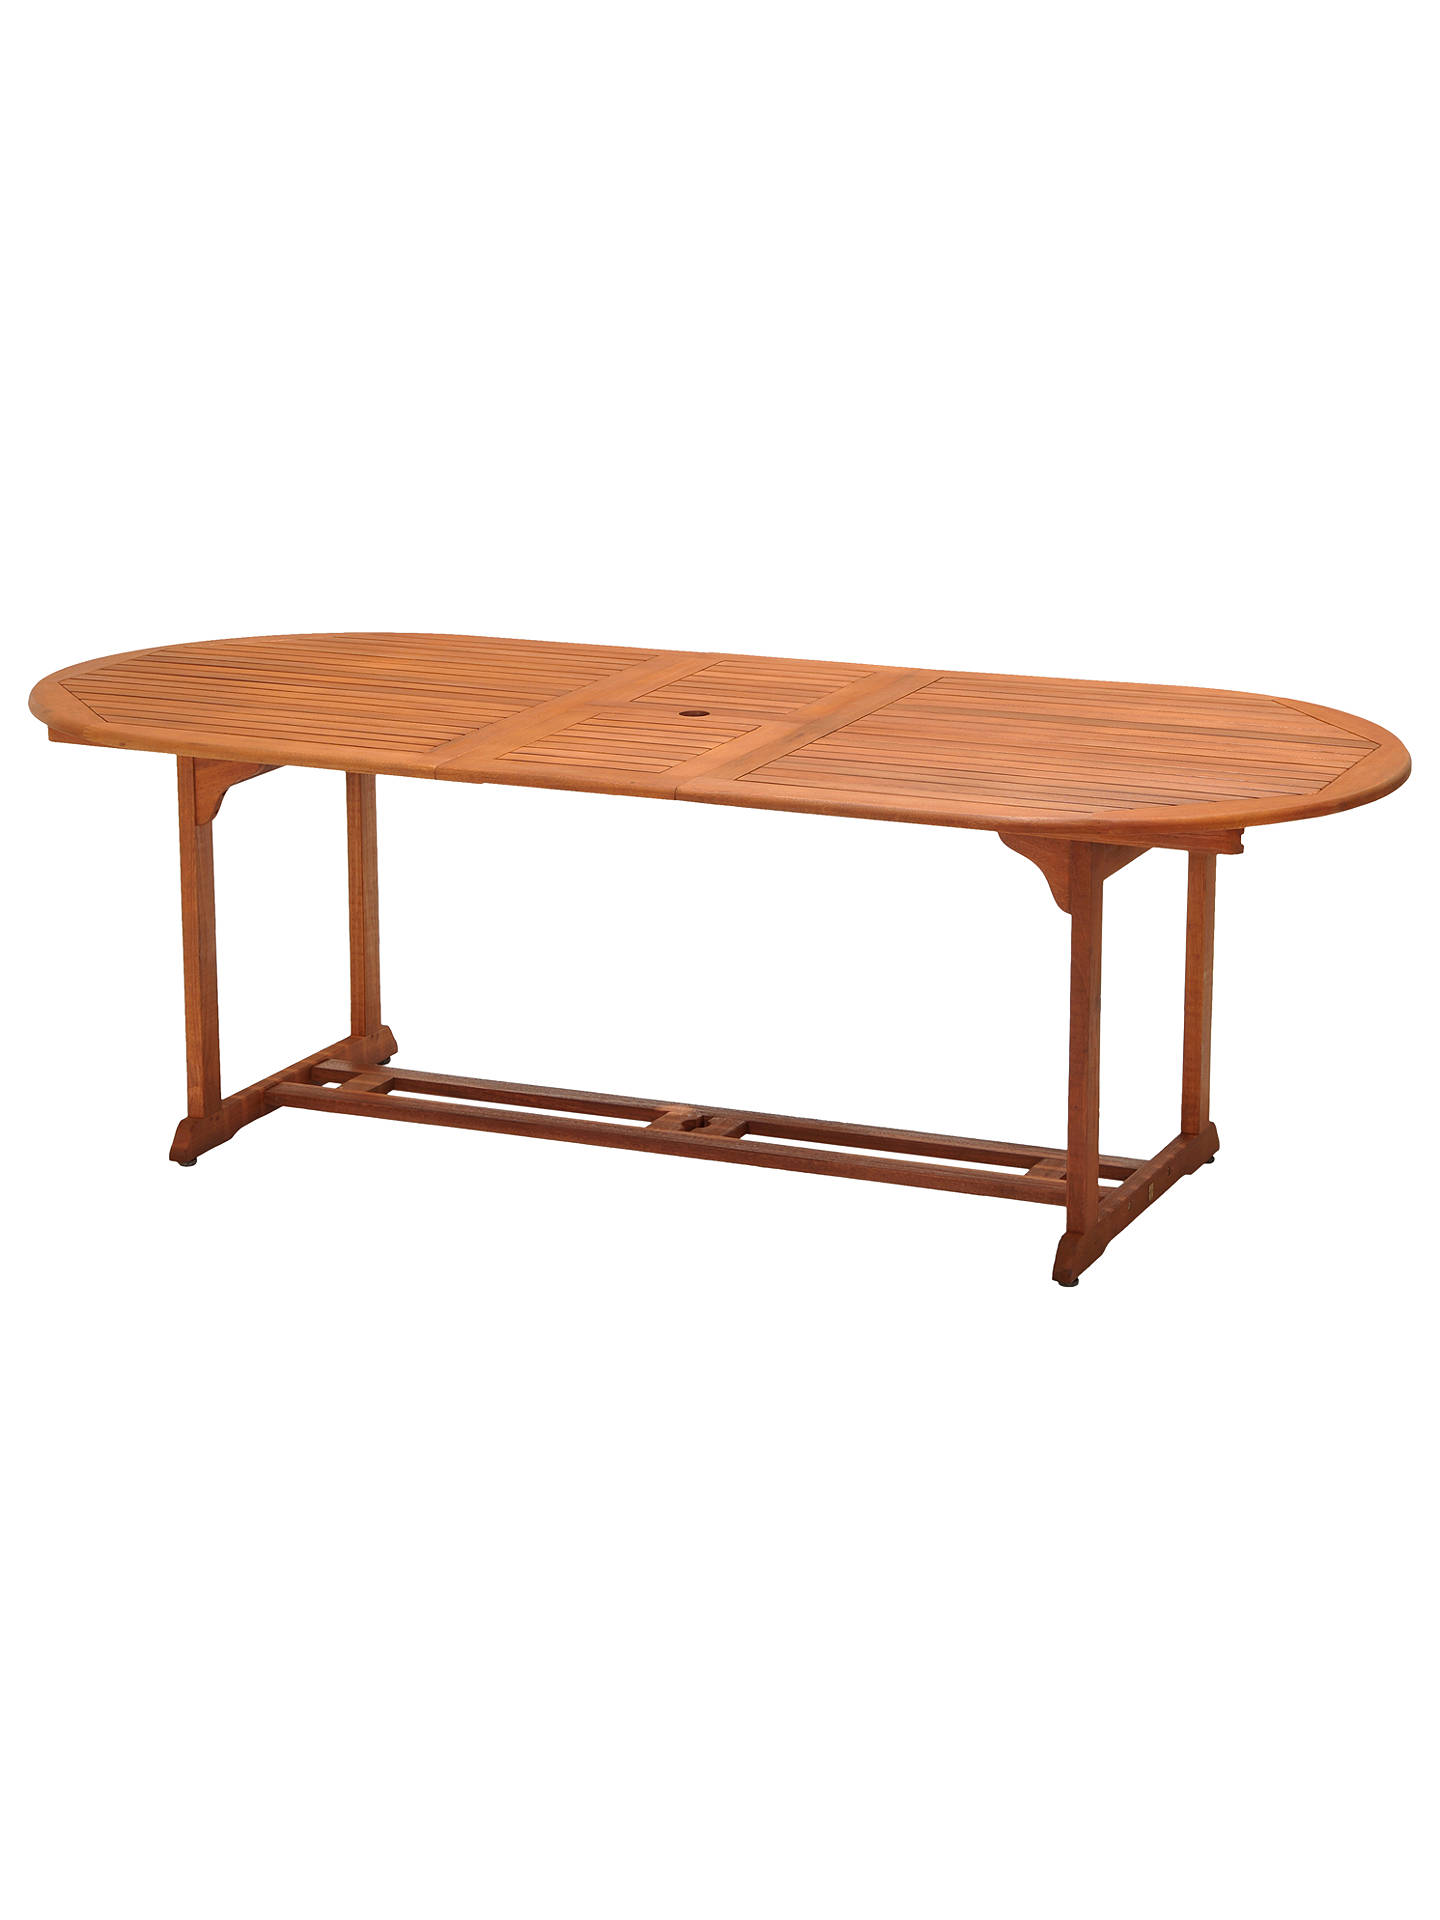 John Lewis & Partners Venice Extending Garden Dining Table, FSC-Certified (Eucalyptus), Natural